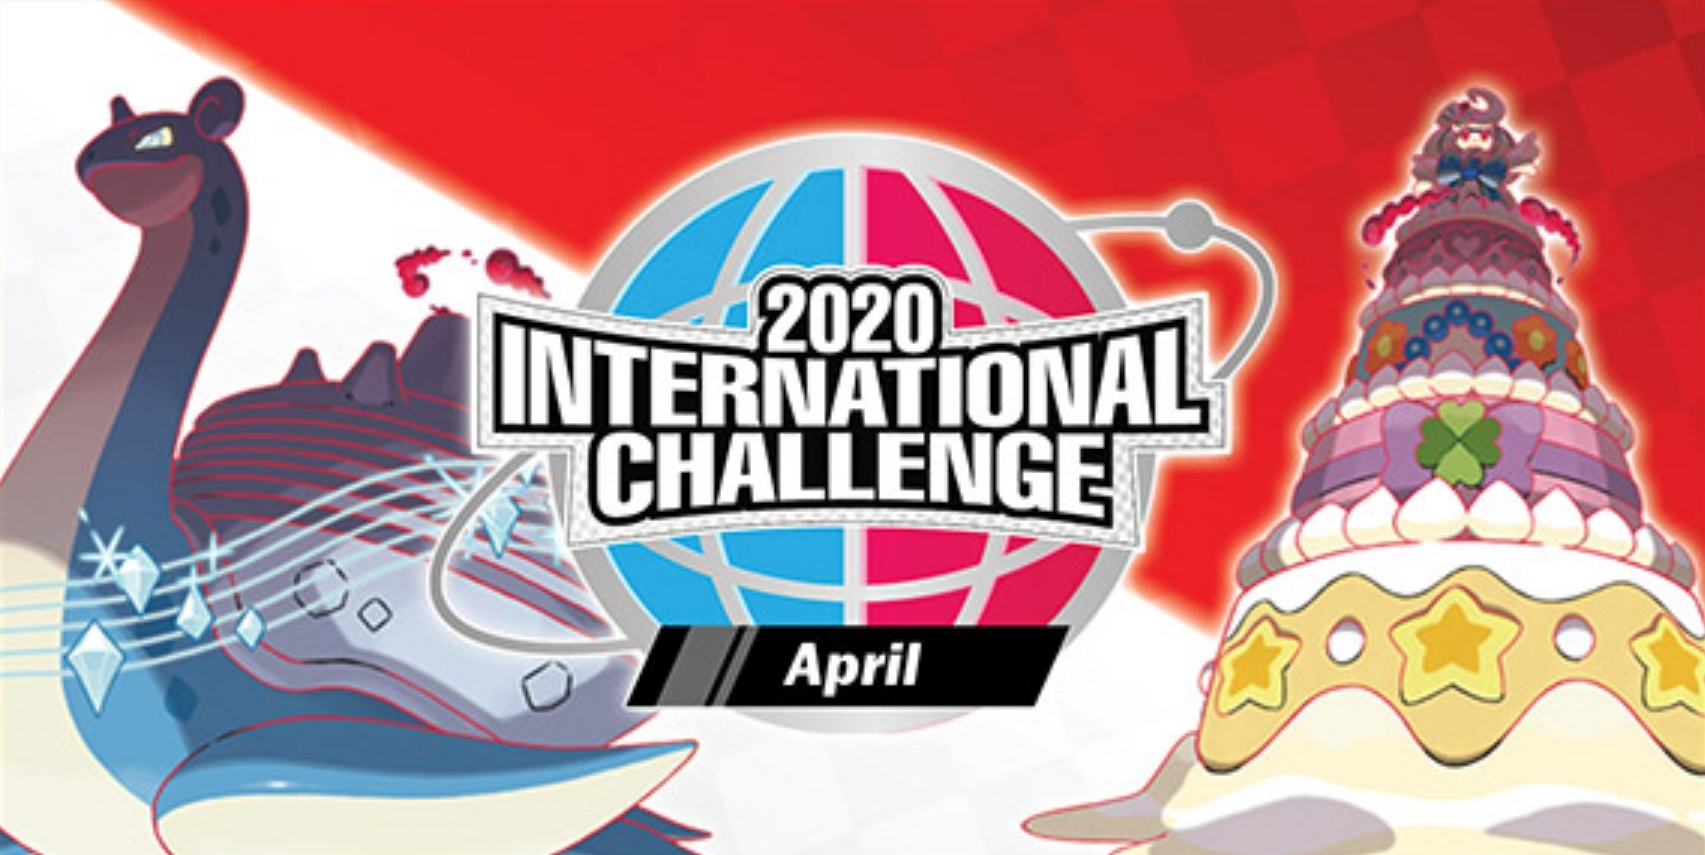 Registration is now open for the 2020 International Challenge April in Pokémon Sword and Shield